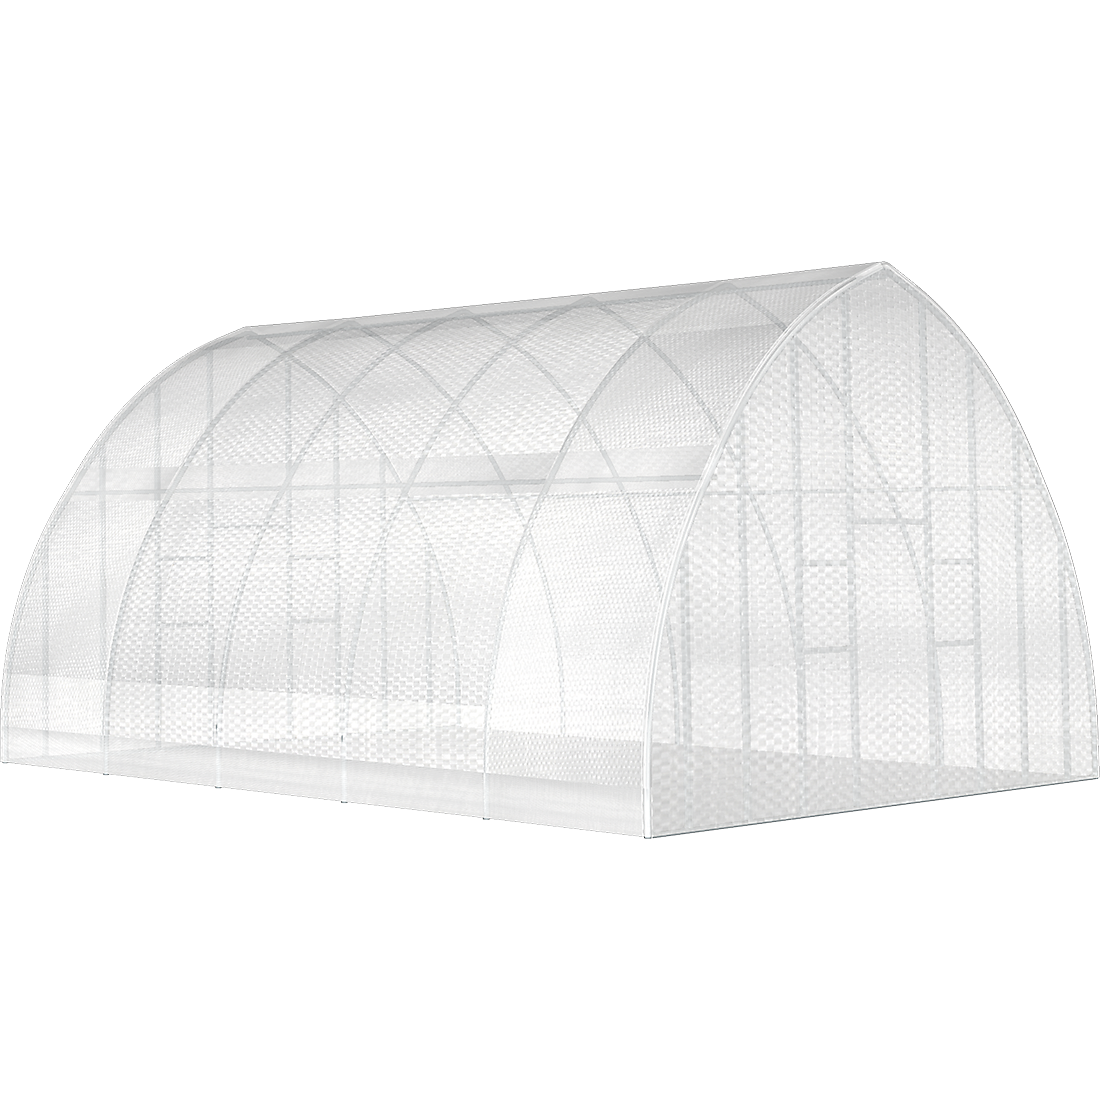 ShelterTech High Tunnel Greenhouse Full Kit